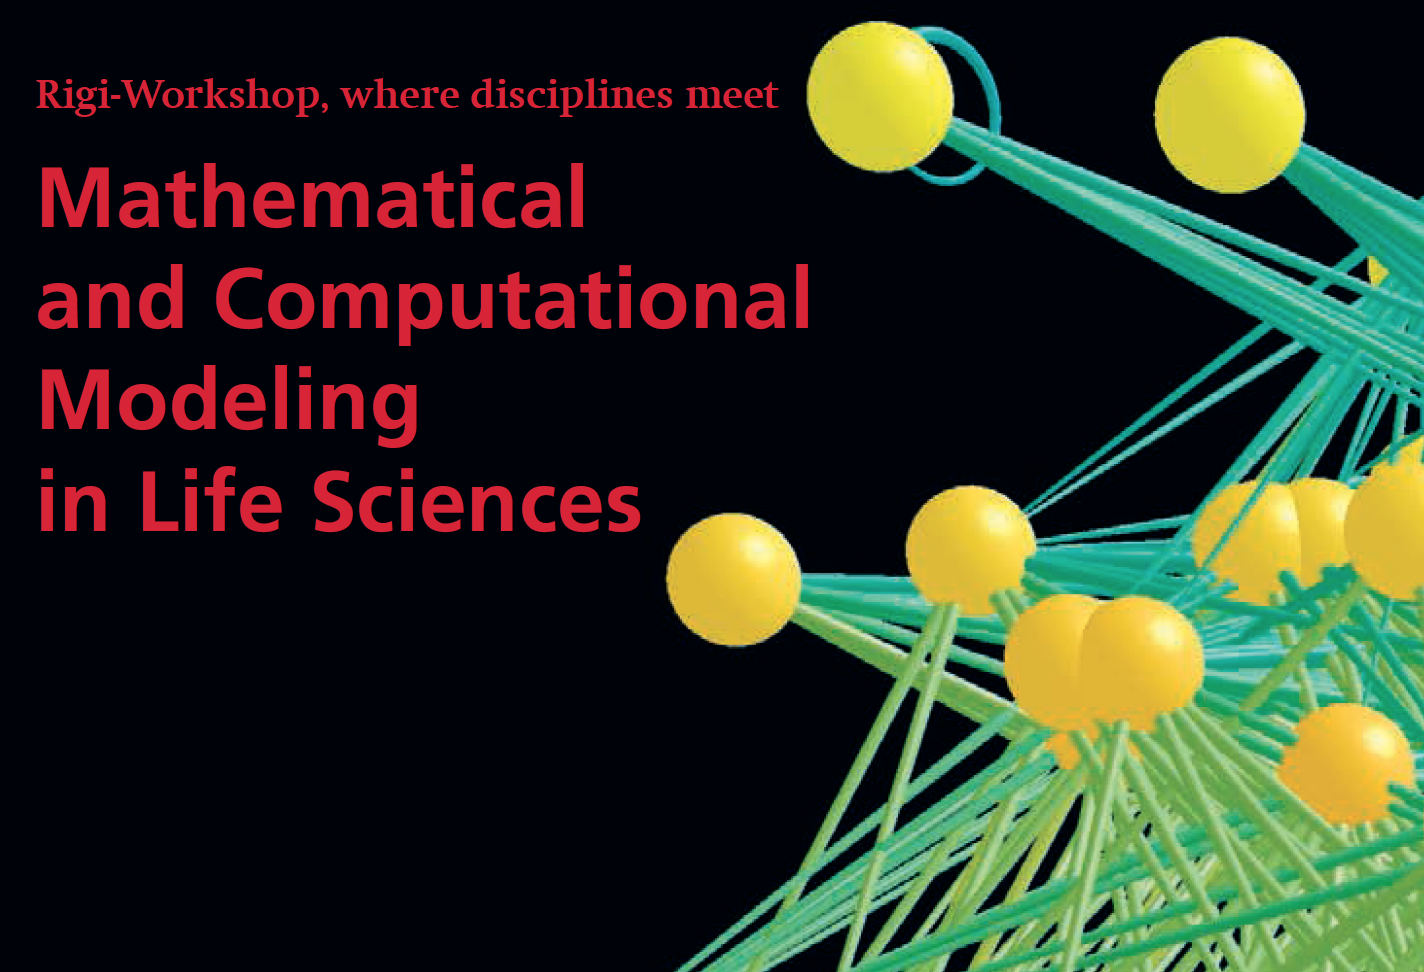 Rigi-Workshop 2015: Mathematical and Computational Modeling in Life Sciences